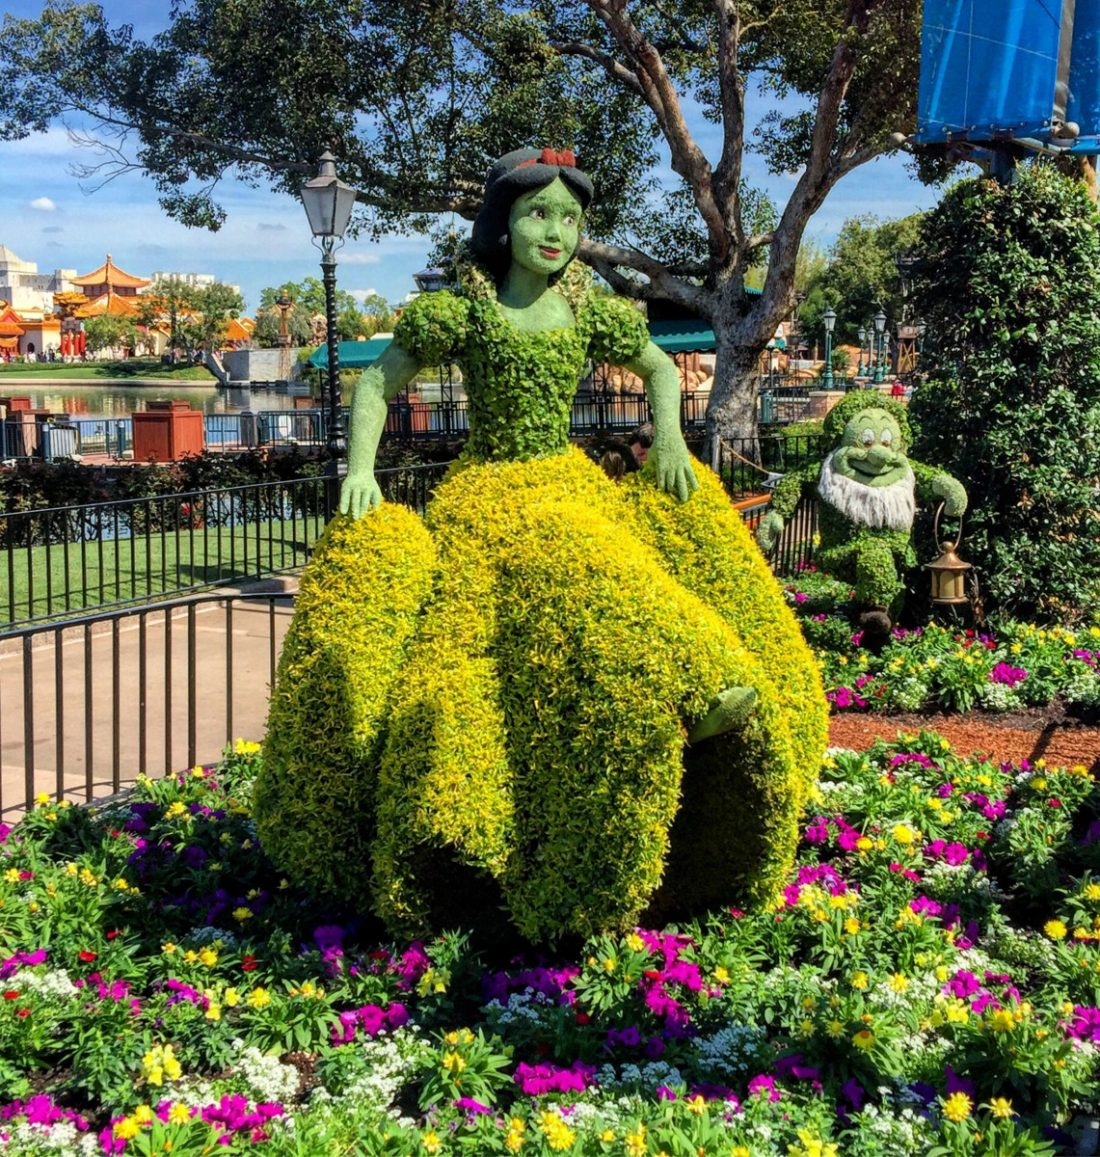 Epcot Back in Blooms: The 25th Epcot International Flower & Garden Festival, Happening Now! 1